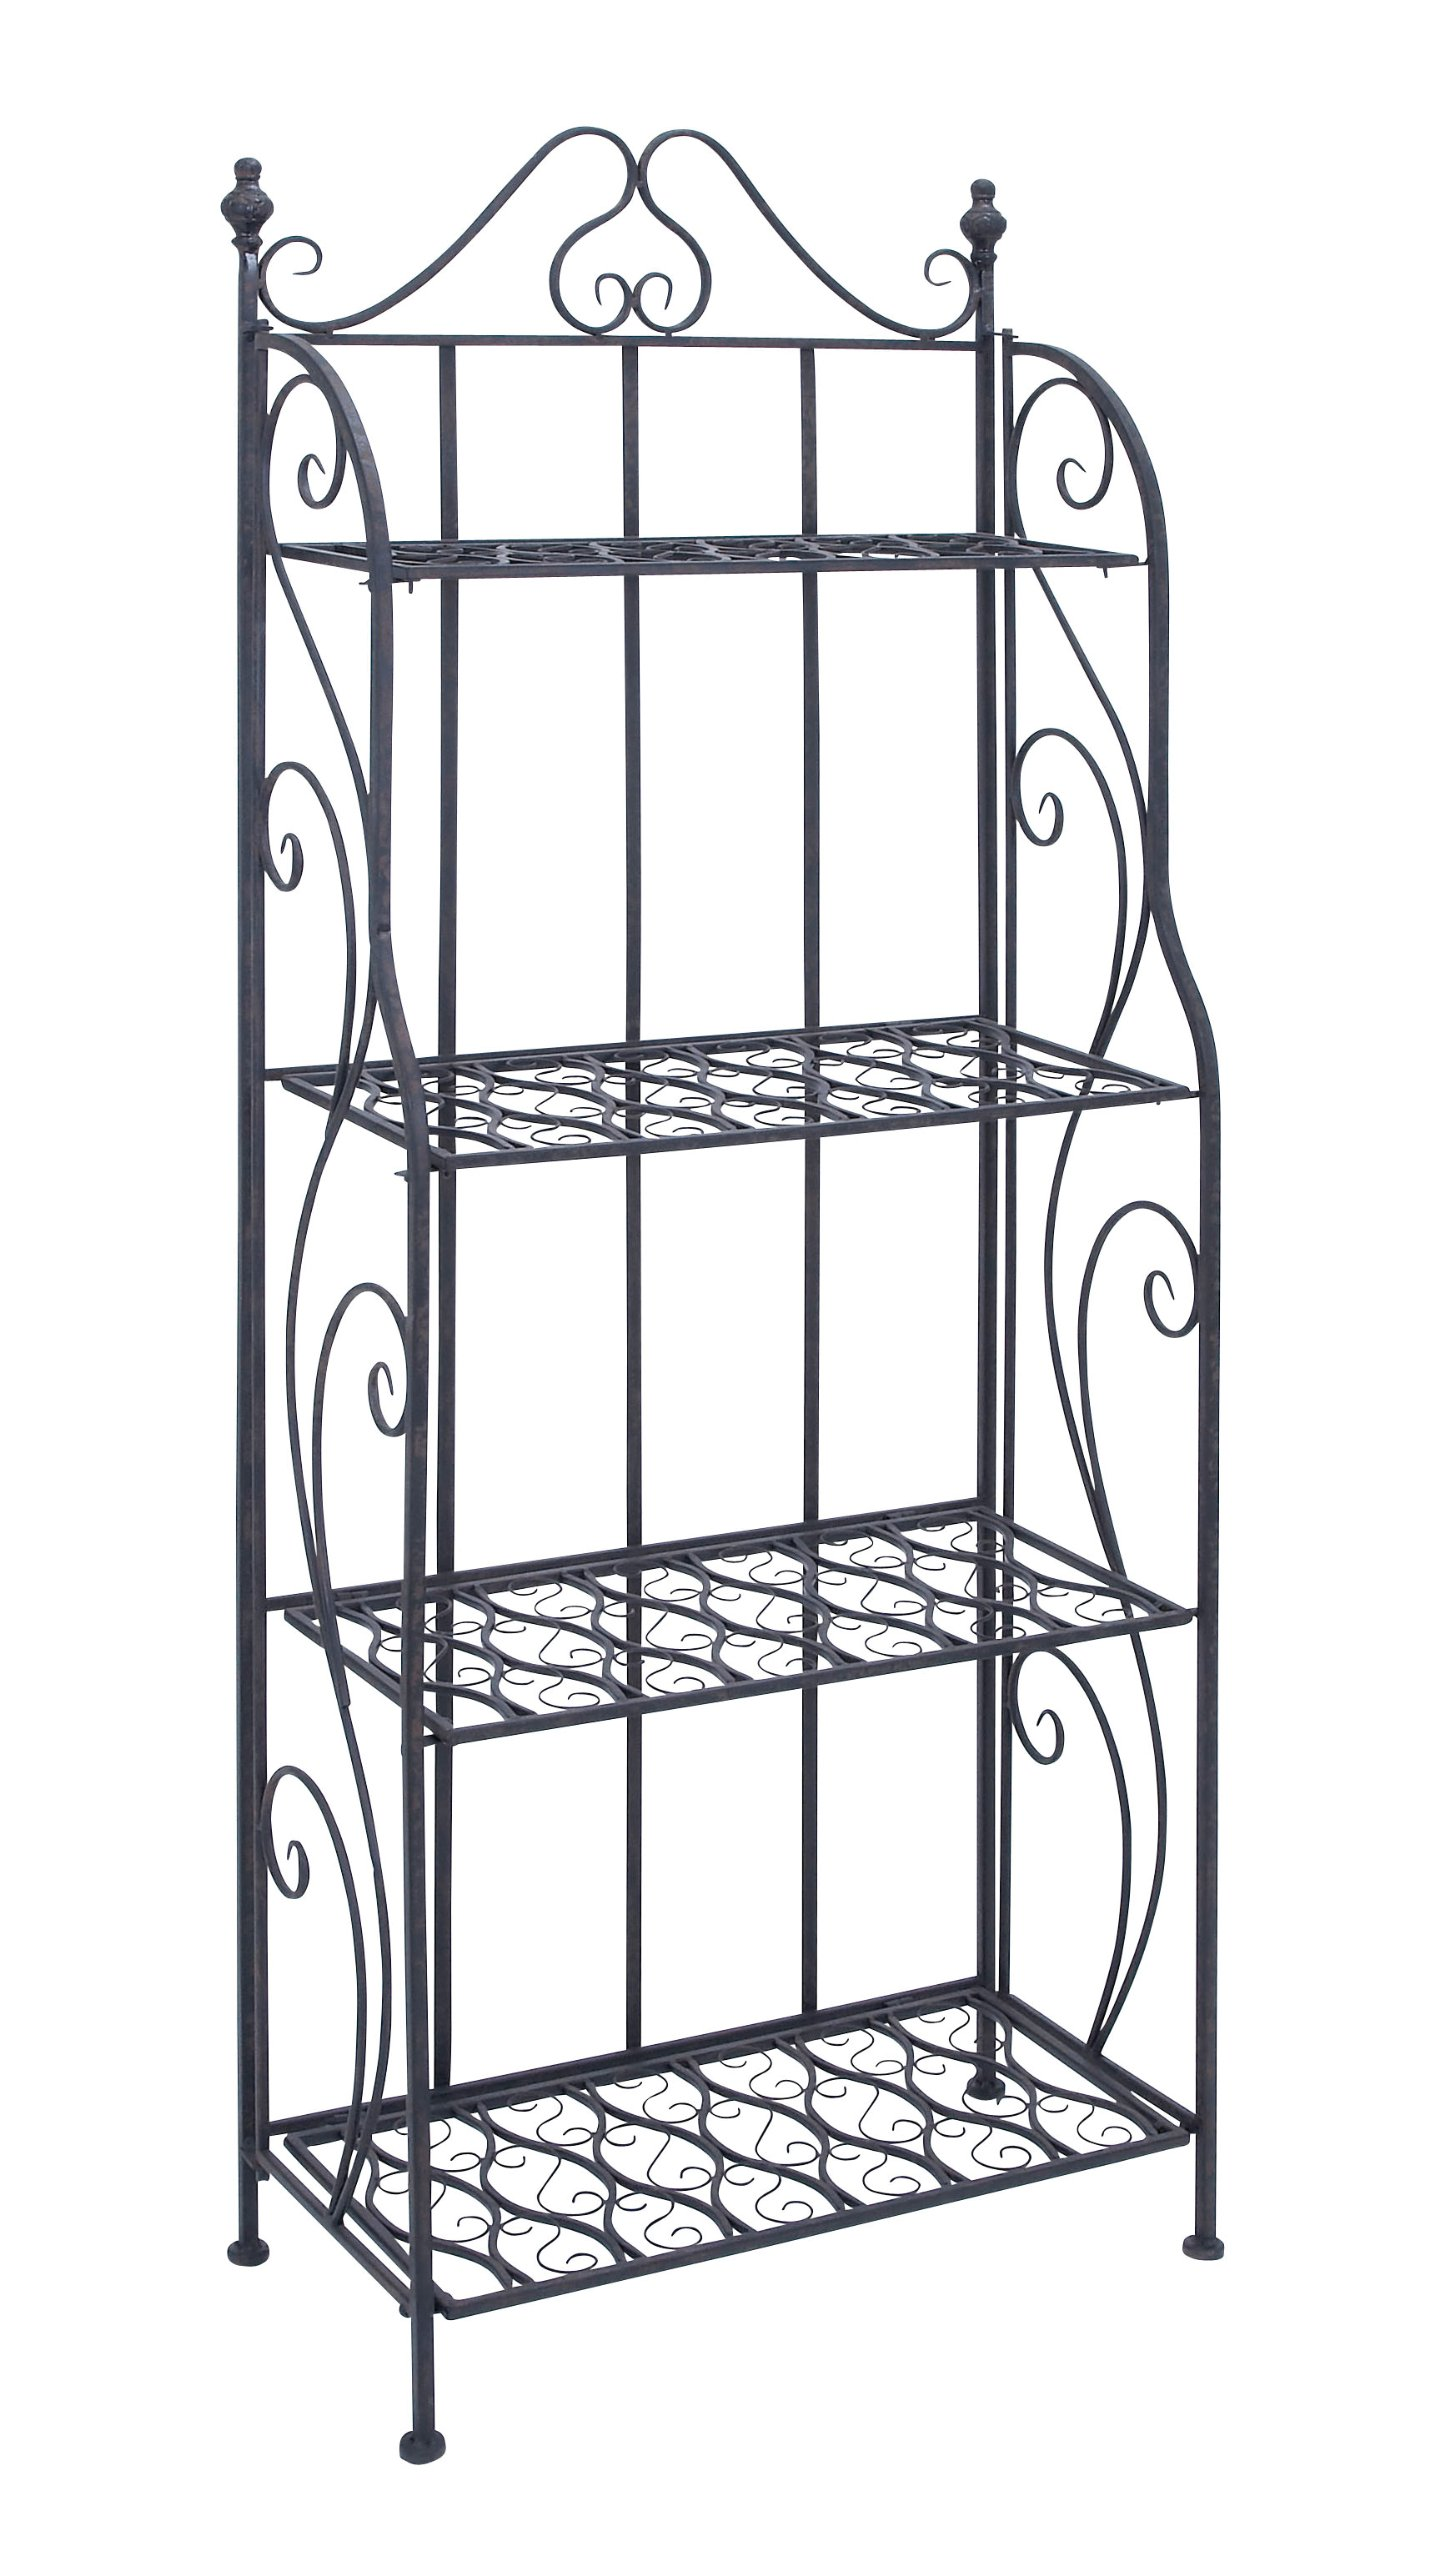 Deco 79 Metal Bakers Rack, 64-Inch by 25-Inch by Deco 79